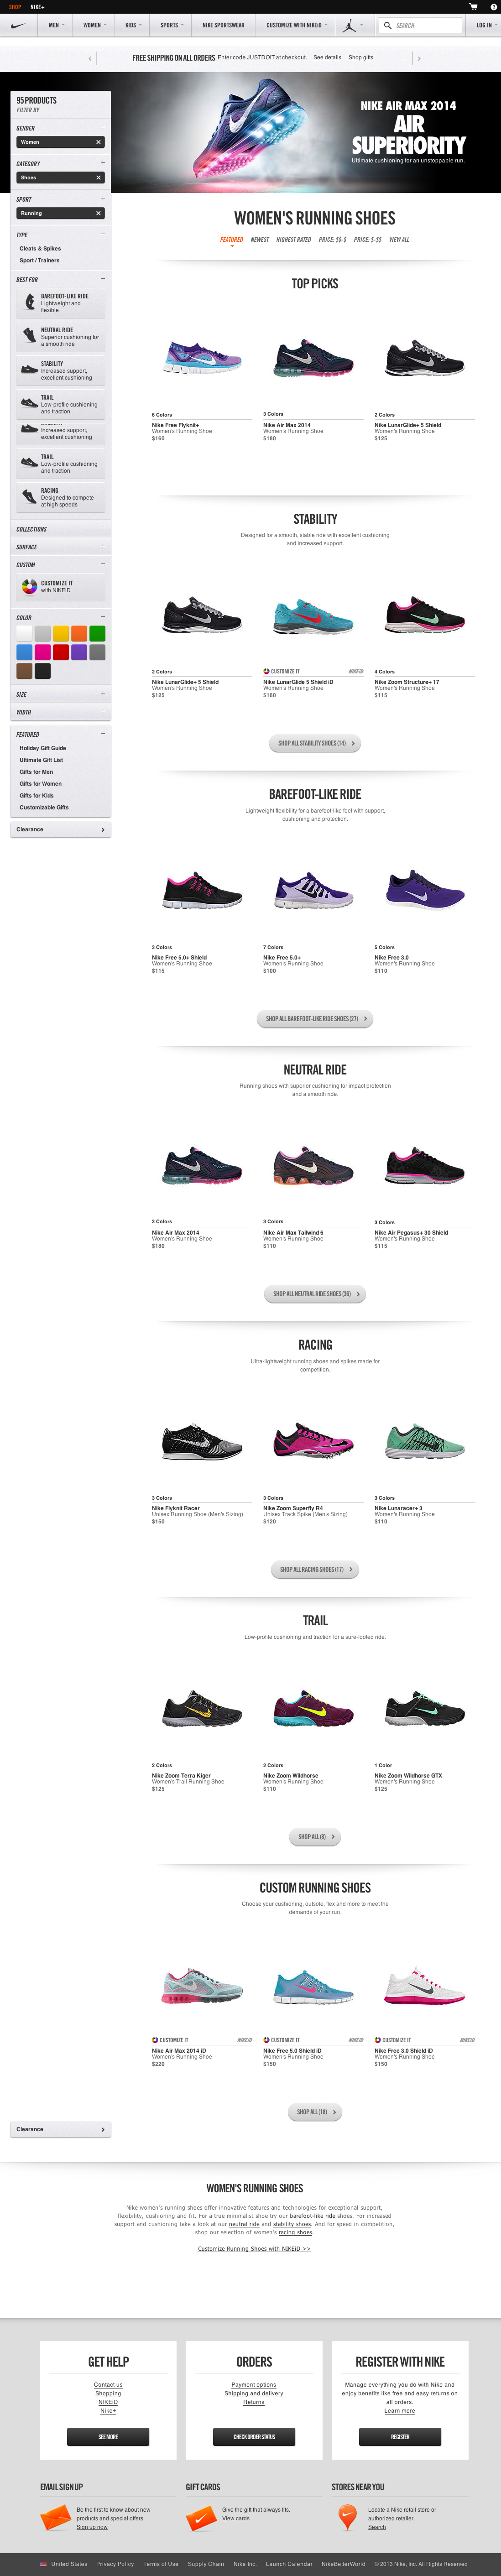 The Screenshot Was Taken December 13 2018 And Depicts Nike S Product List In Total We Ve Reviewed 33 Of Design Elements To See Them All